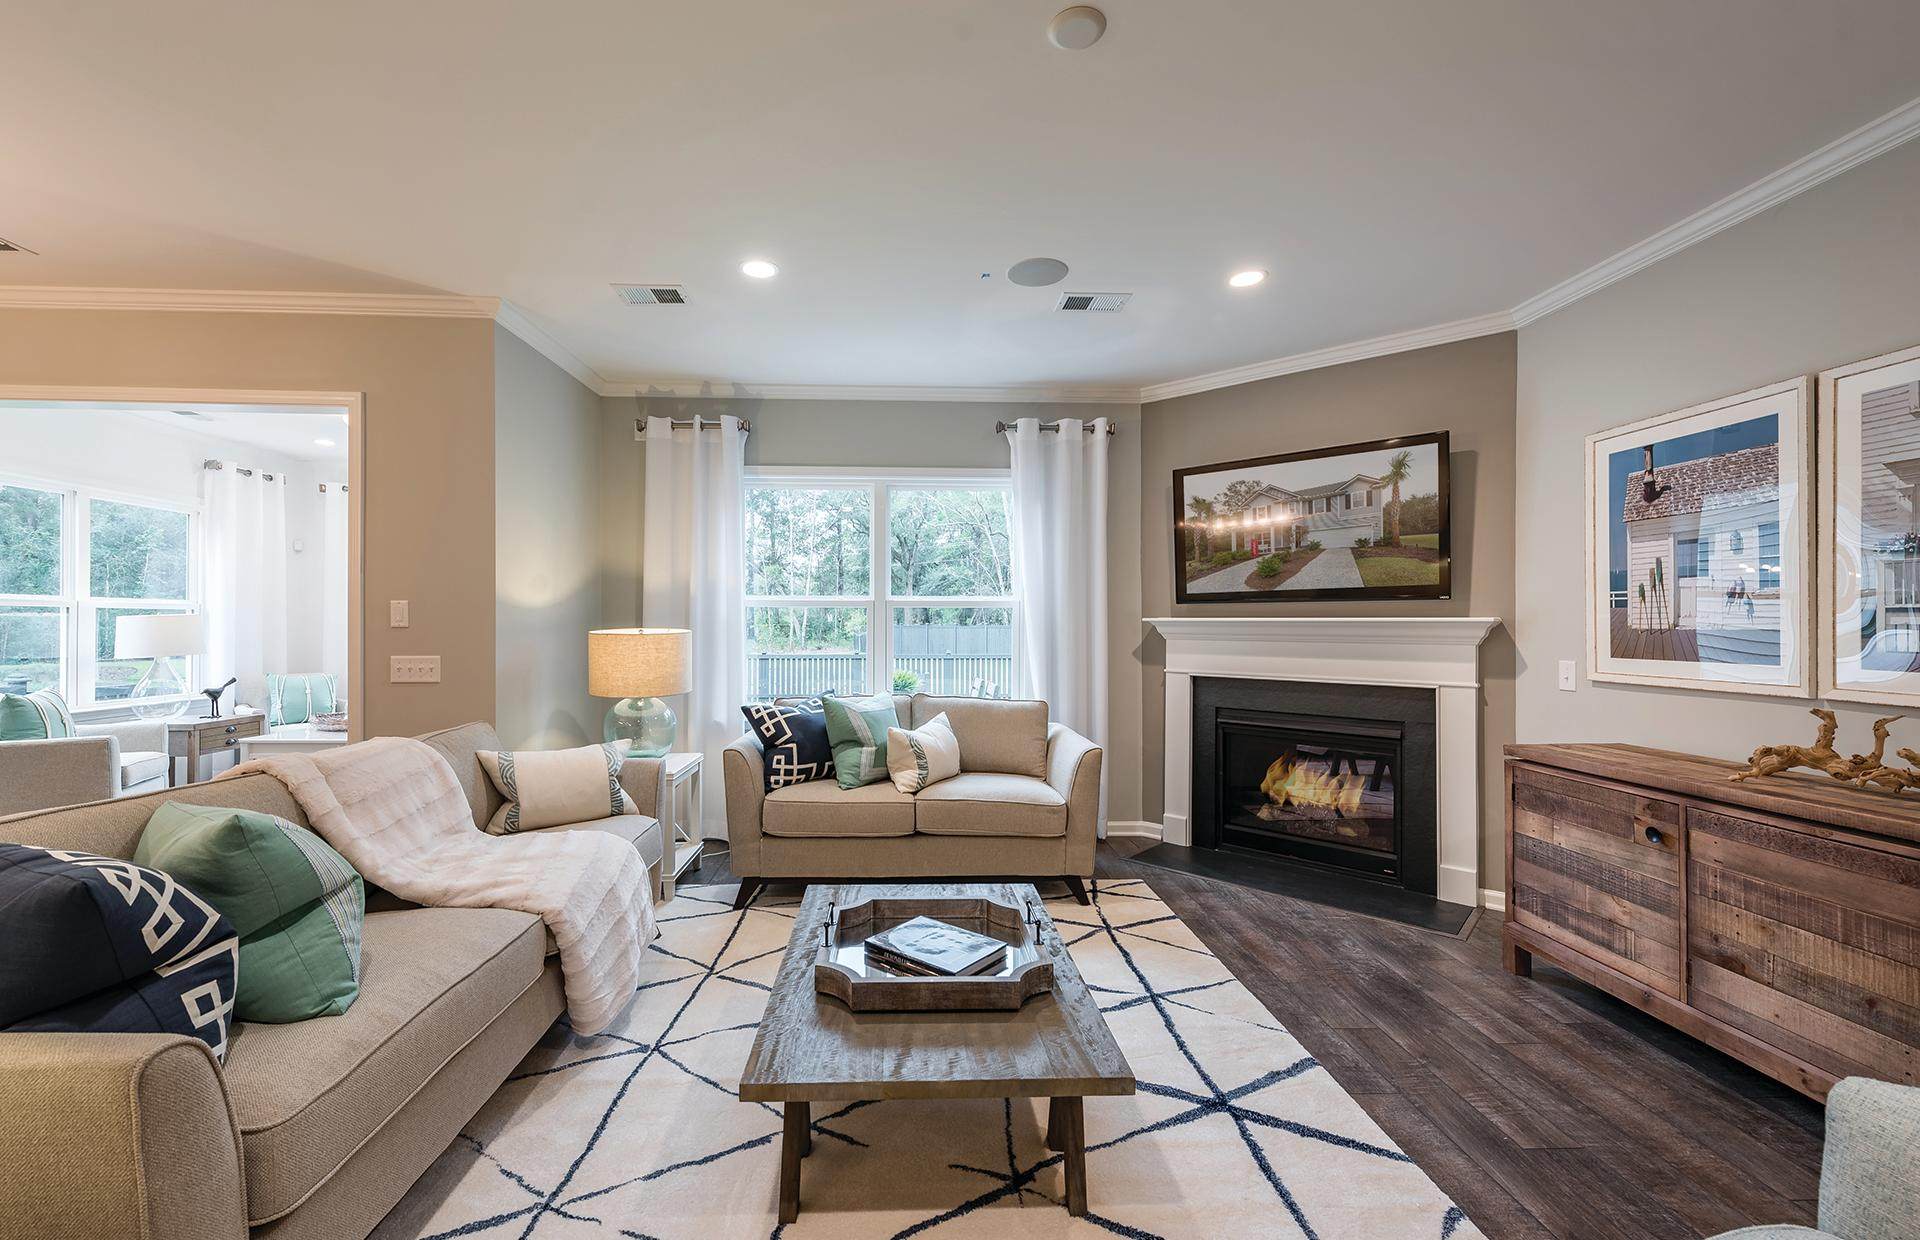 Sanctuary Cove at Cane Bay by Centex Homes image 3